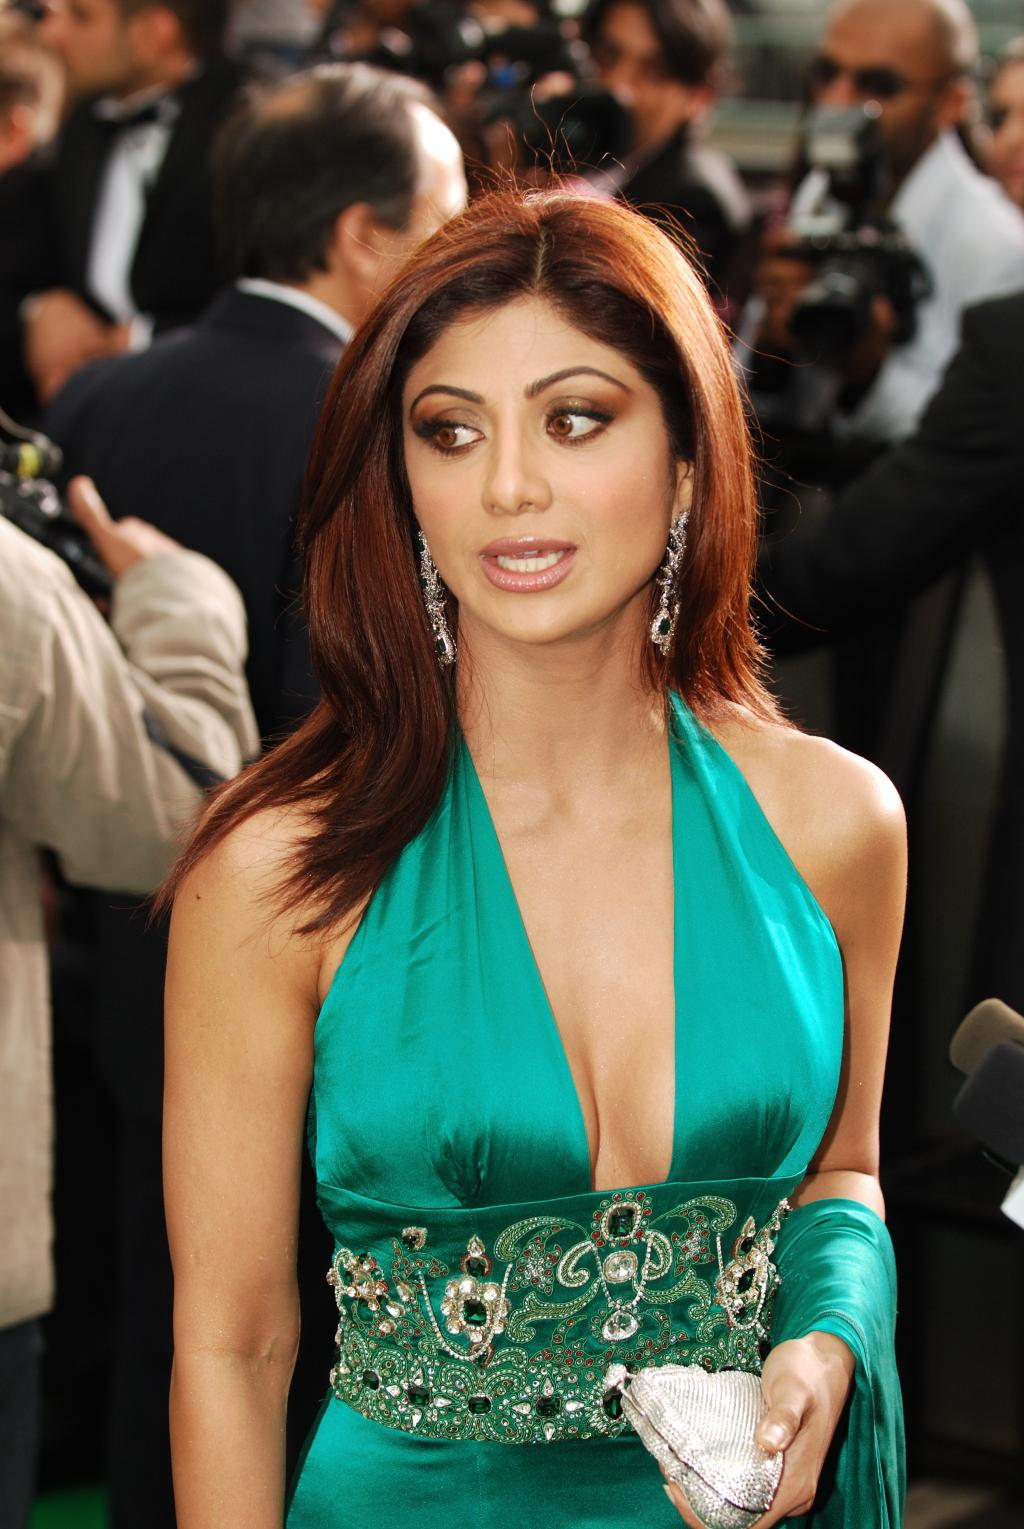 Shilpa Shetty - Wikipedia, The Free Encyclopedia